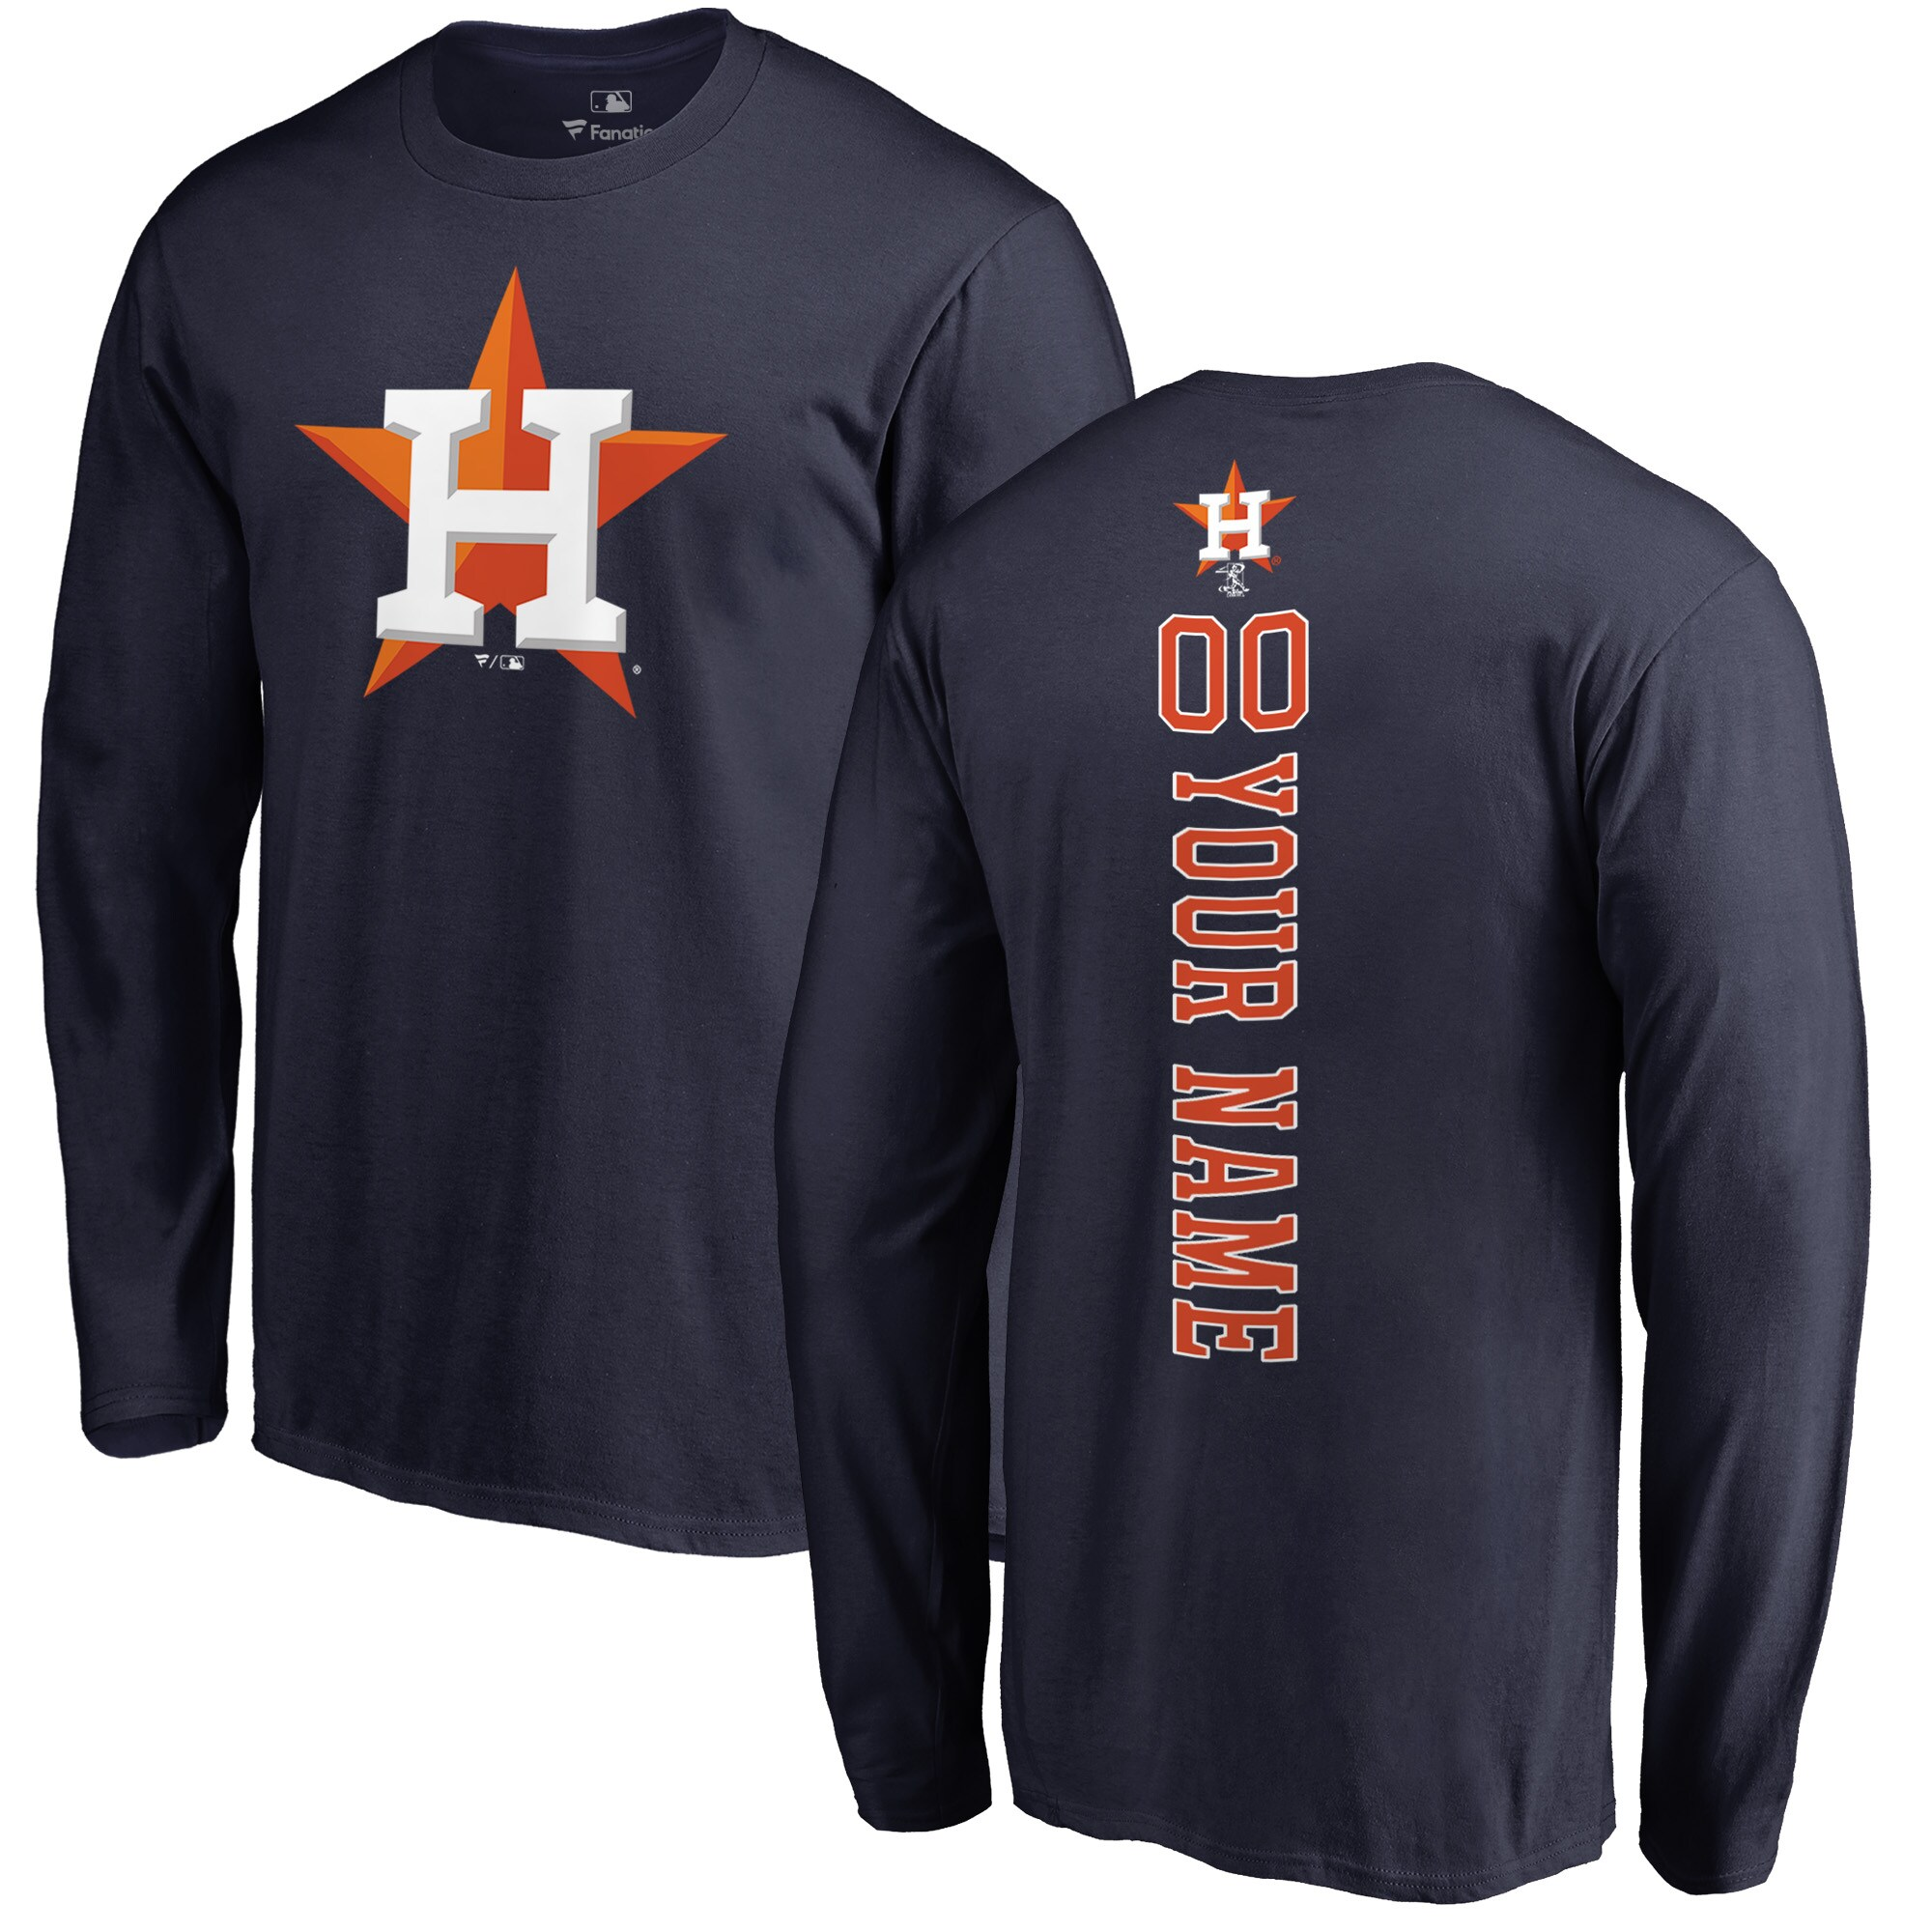 Houston Astros Fanatics Branded Personalized Playmaker Long Sleeve T-Shirt - Navy